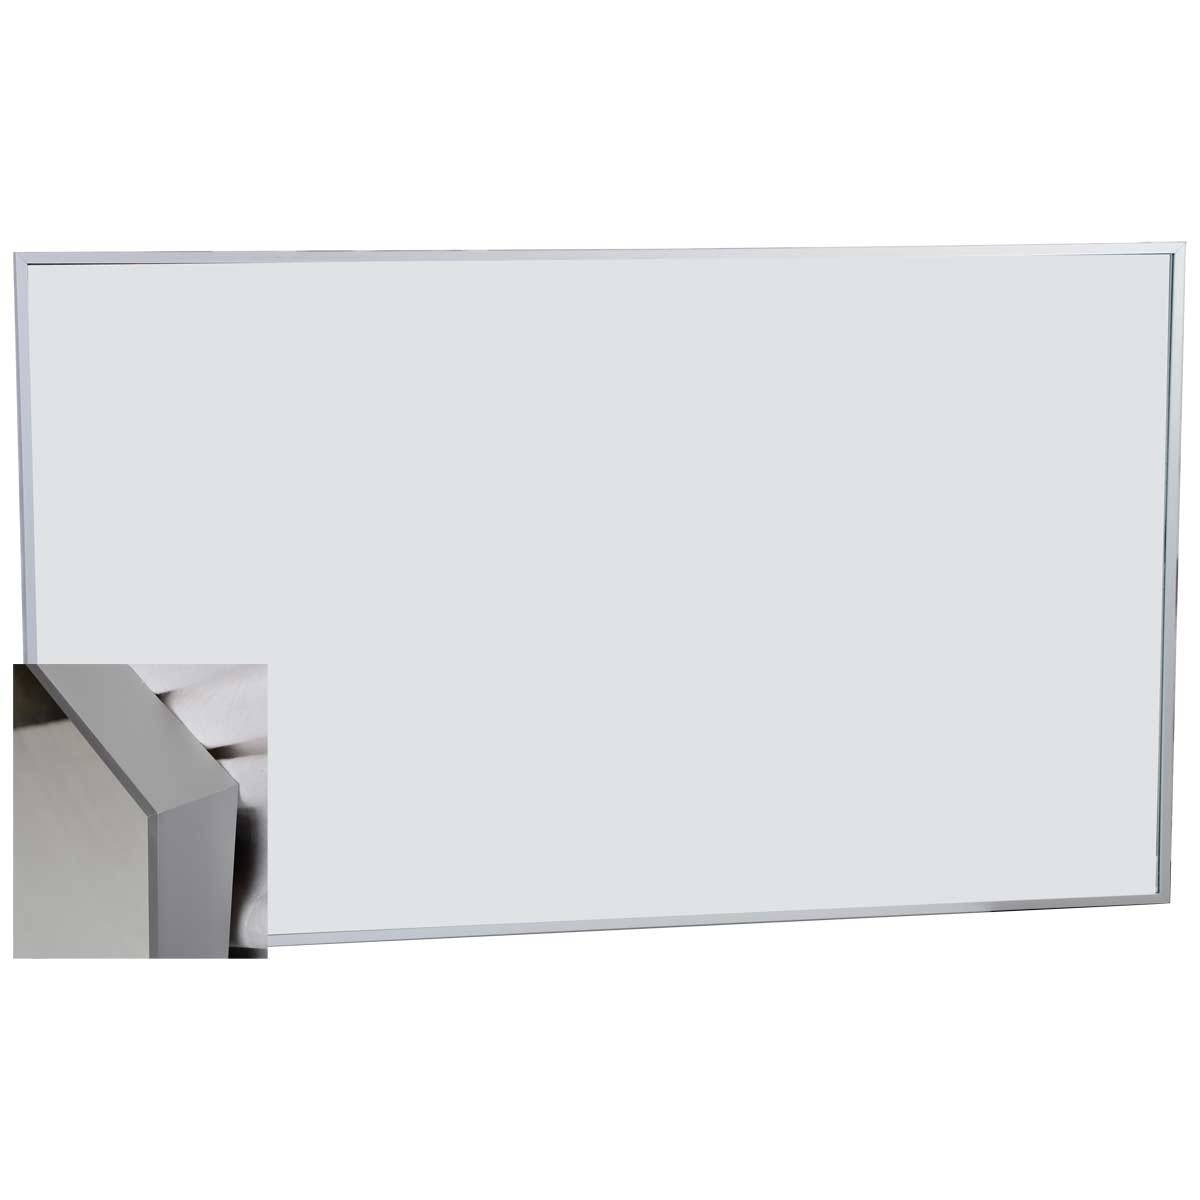 Buy 54 In. W X 31.5 In. H Metal Framed Wall Mirror Tn-B1380-M-Al for White Metal Mirrors (Image 9 of 25)